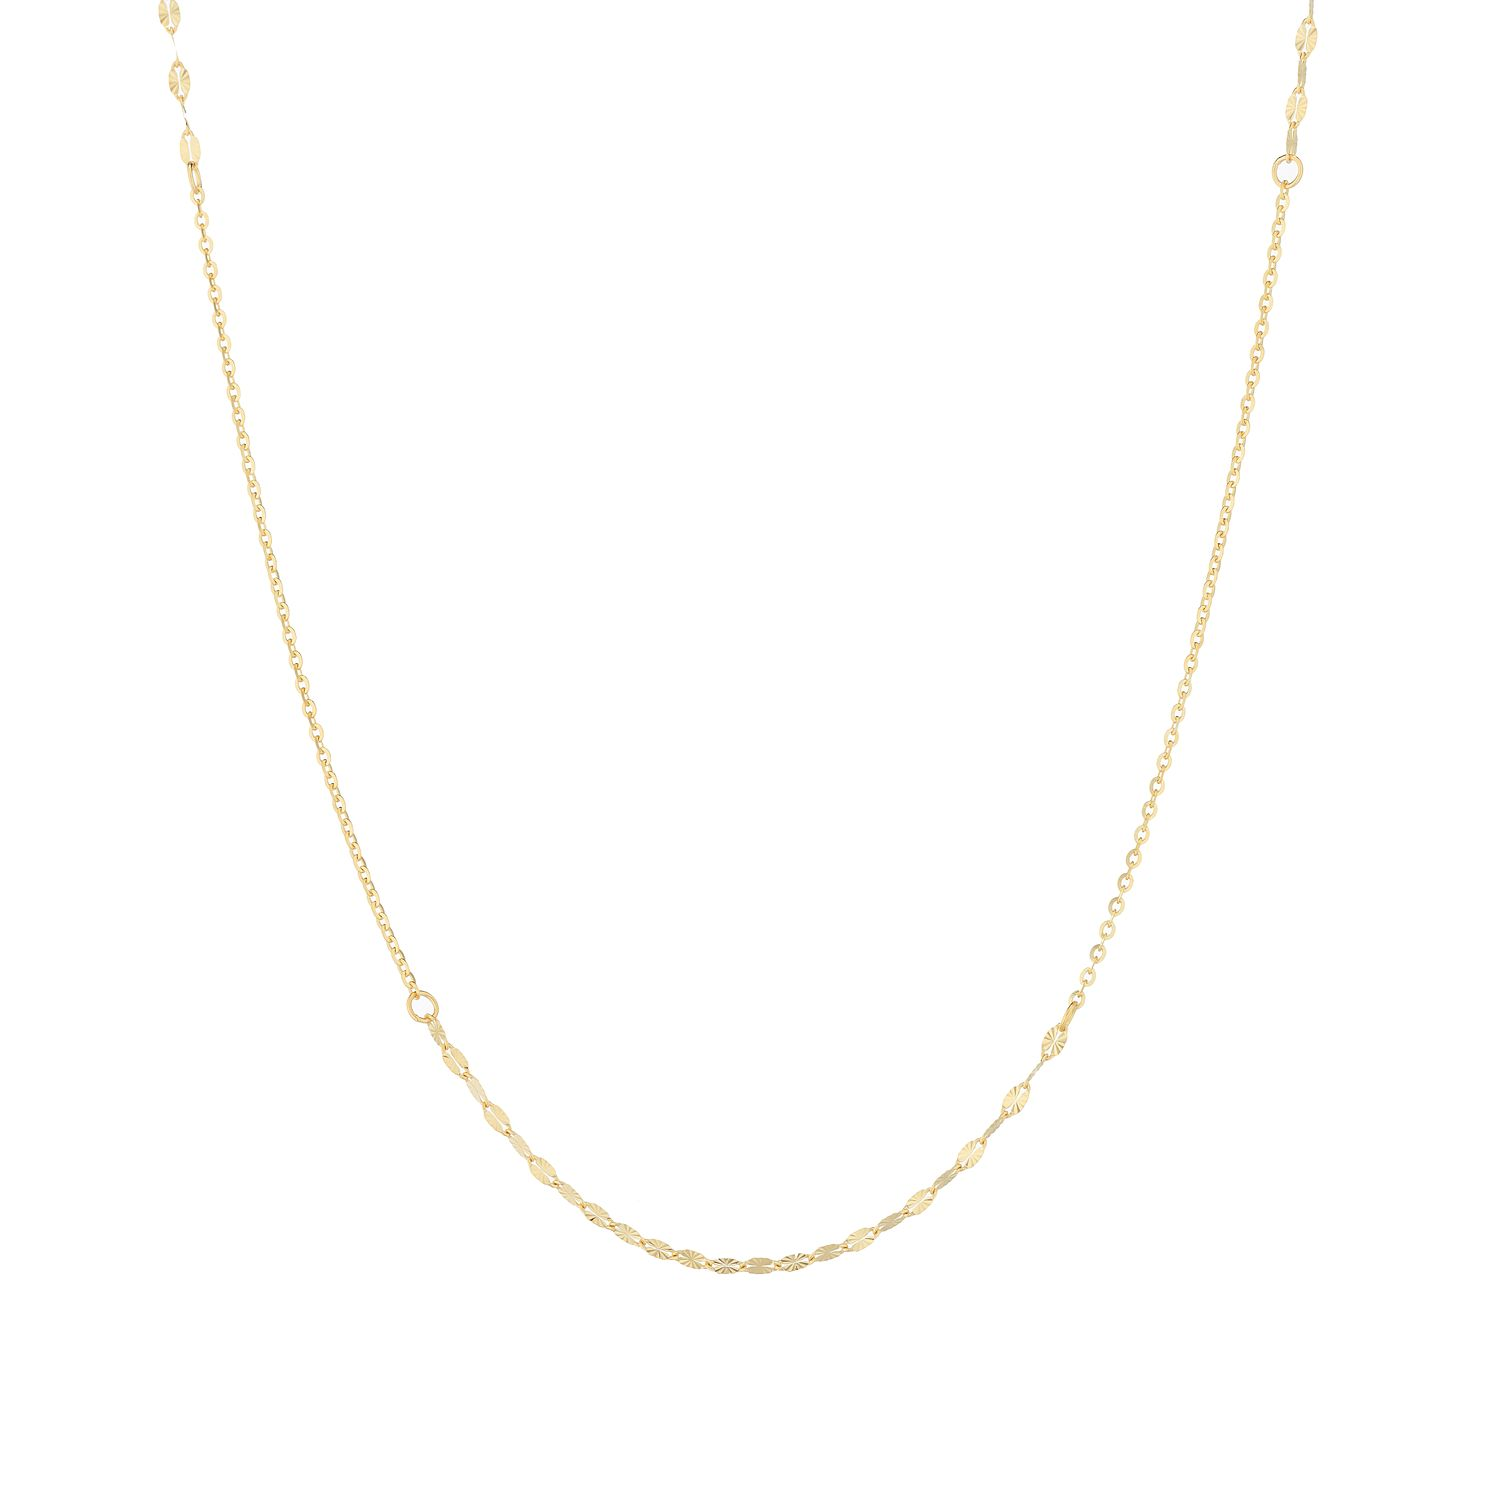 9ct Yellow Gold Fancy Disc Chain Necklace - Product number 9743030